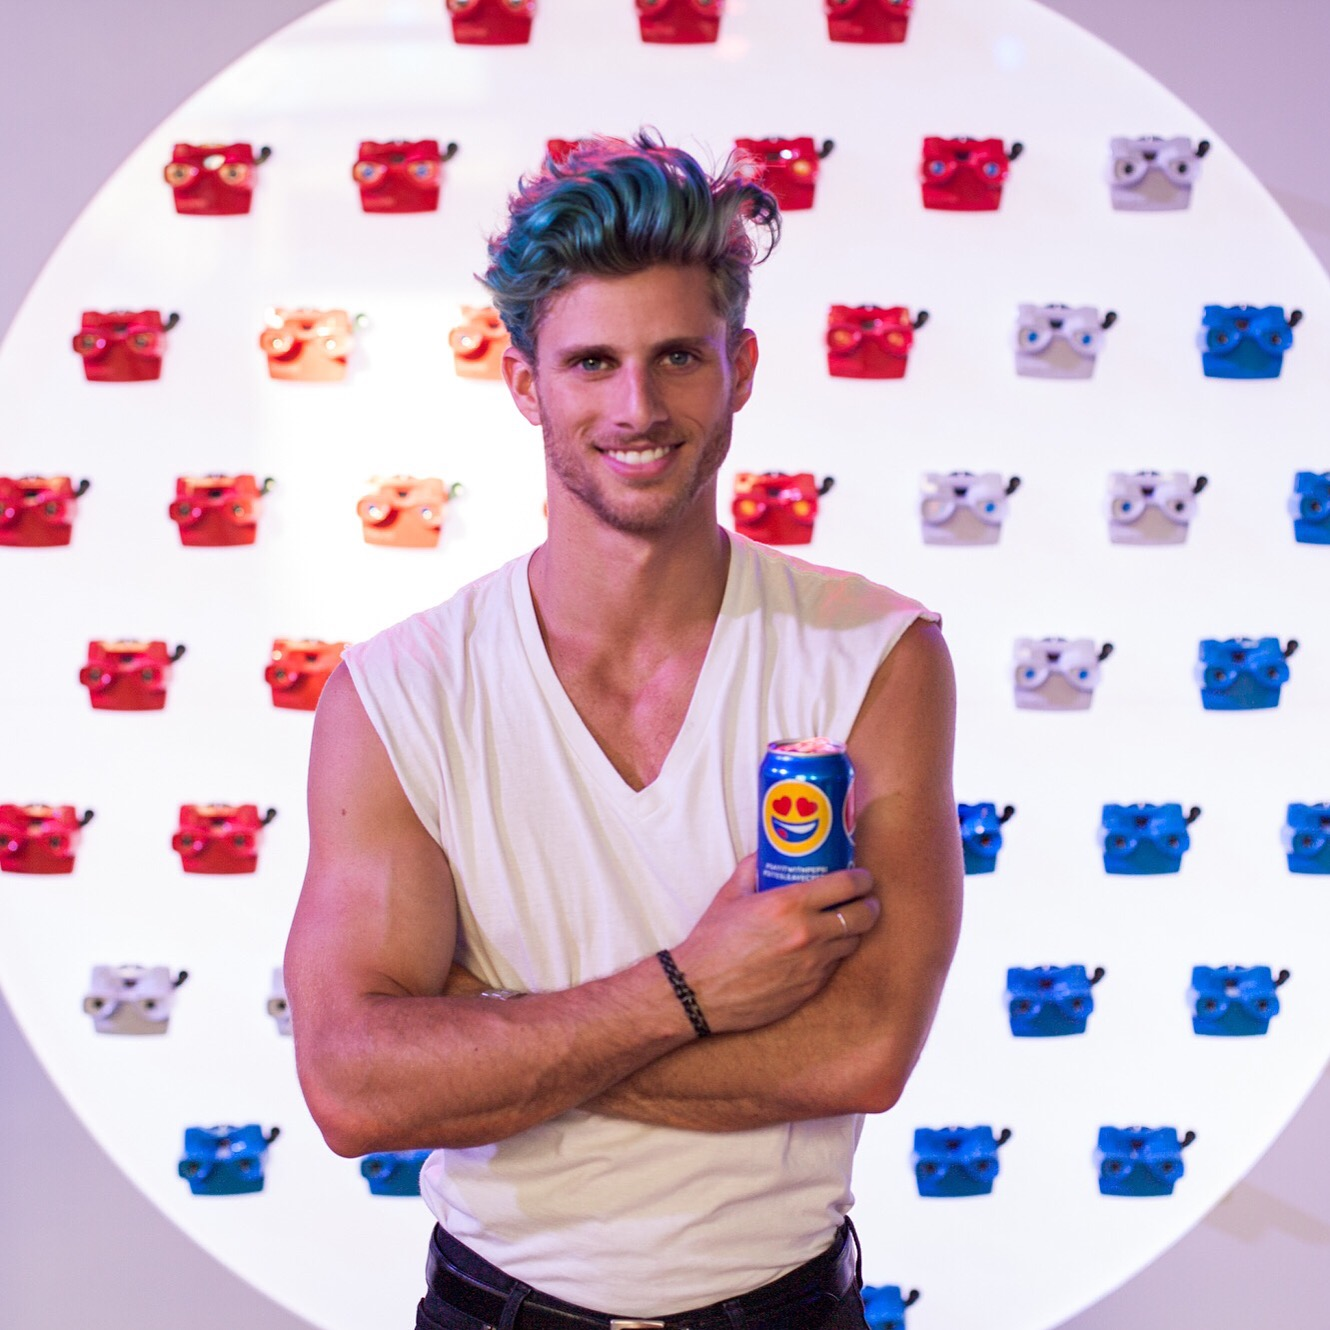 Had some fun with Pepsi at the installation in Soho as they look at love through history!